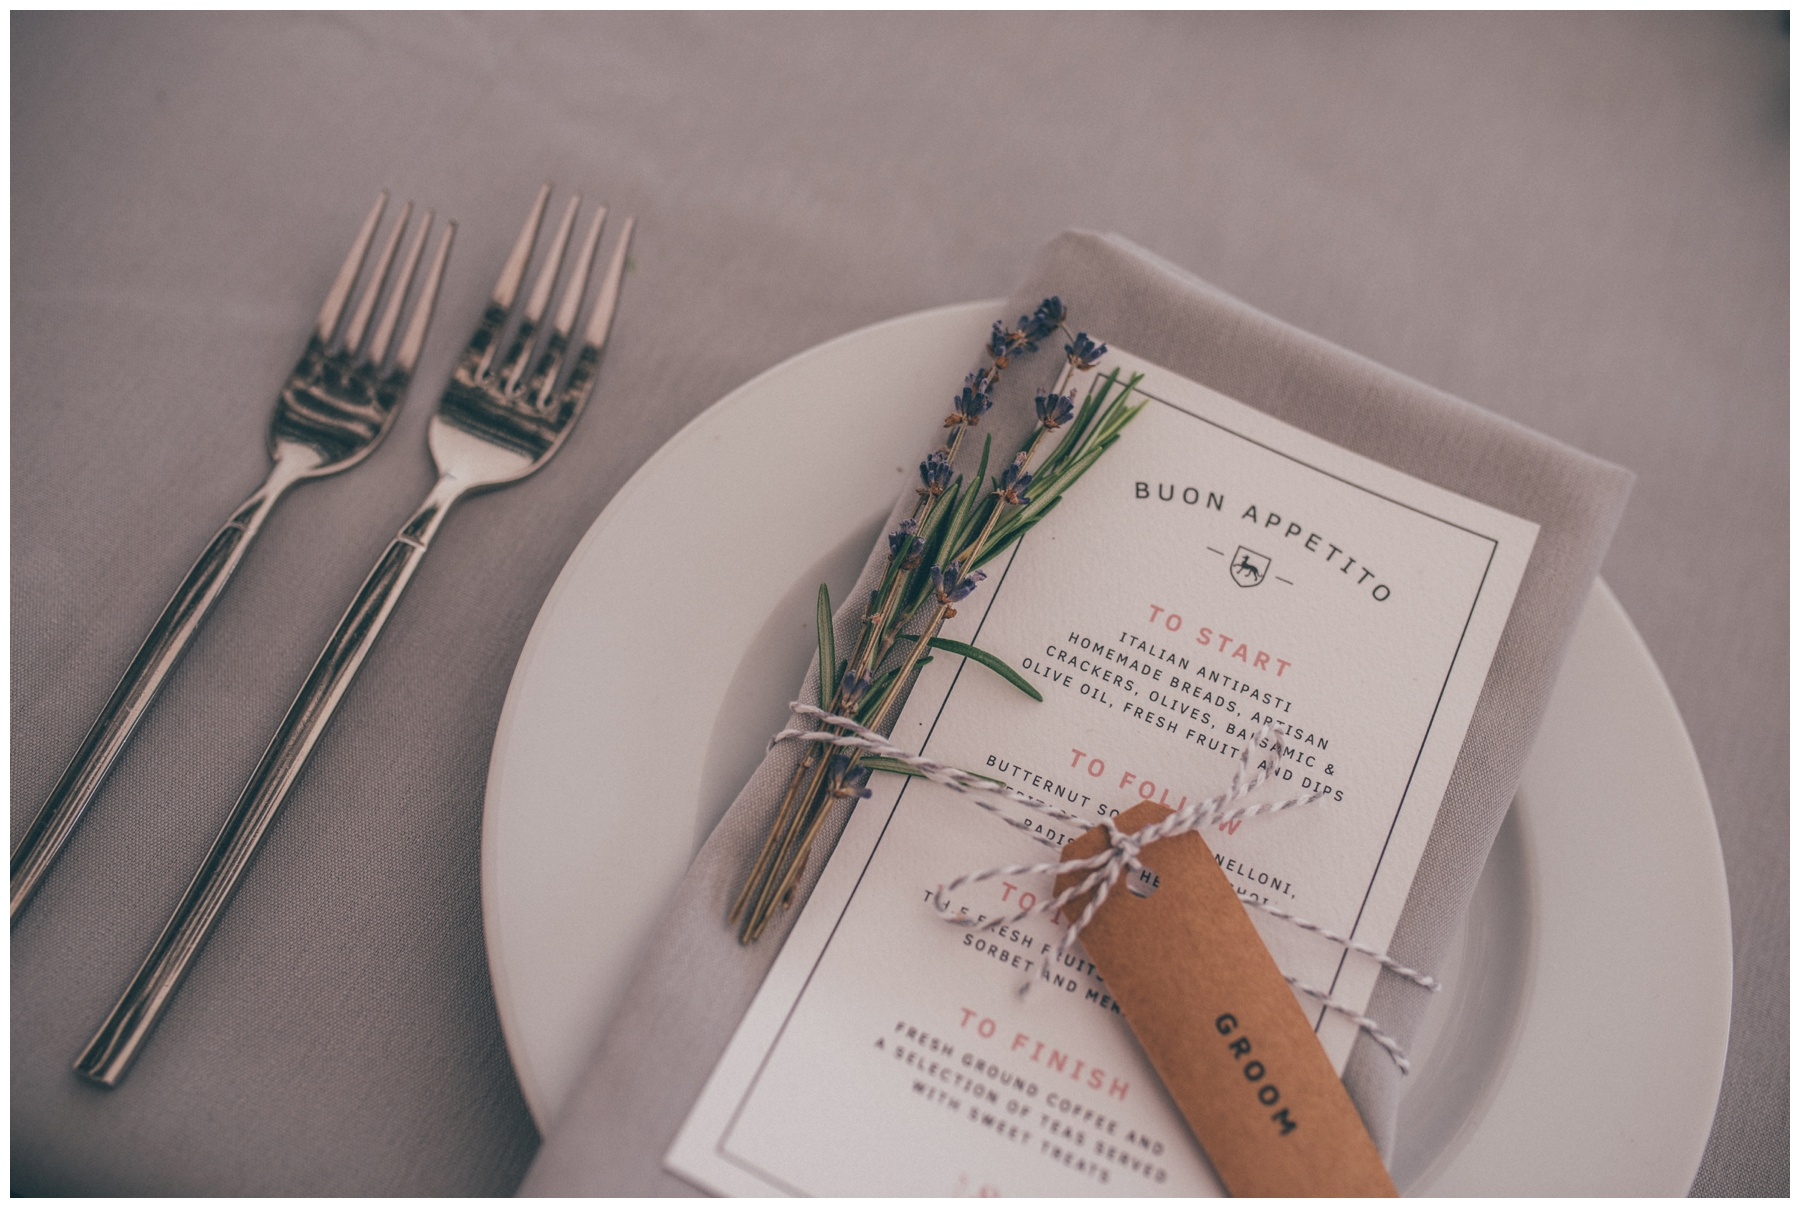 Stunning table decorations and wedding stationary at the Holford Estate in Cheshire.